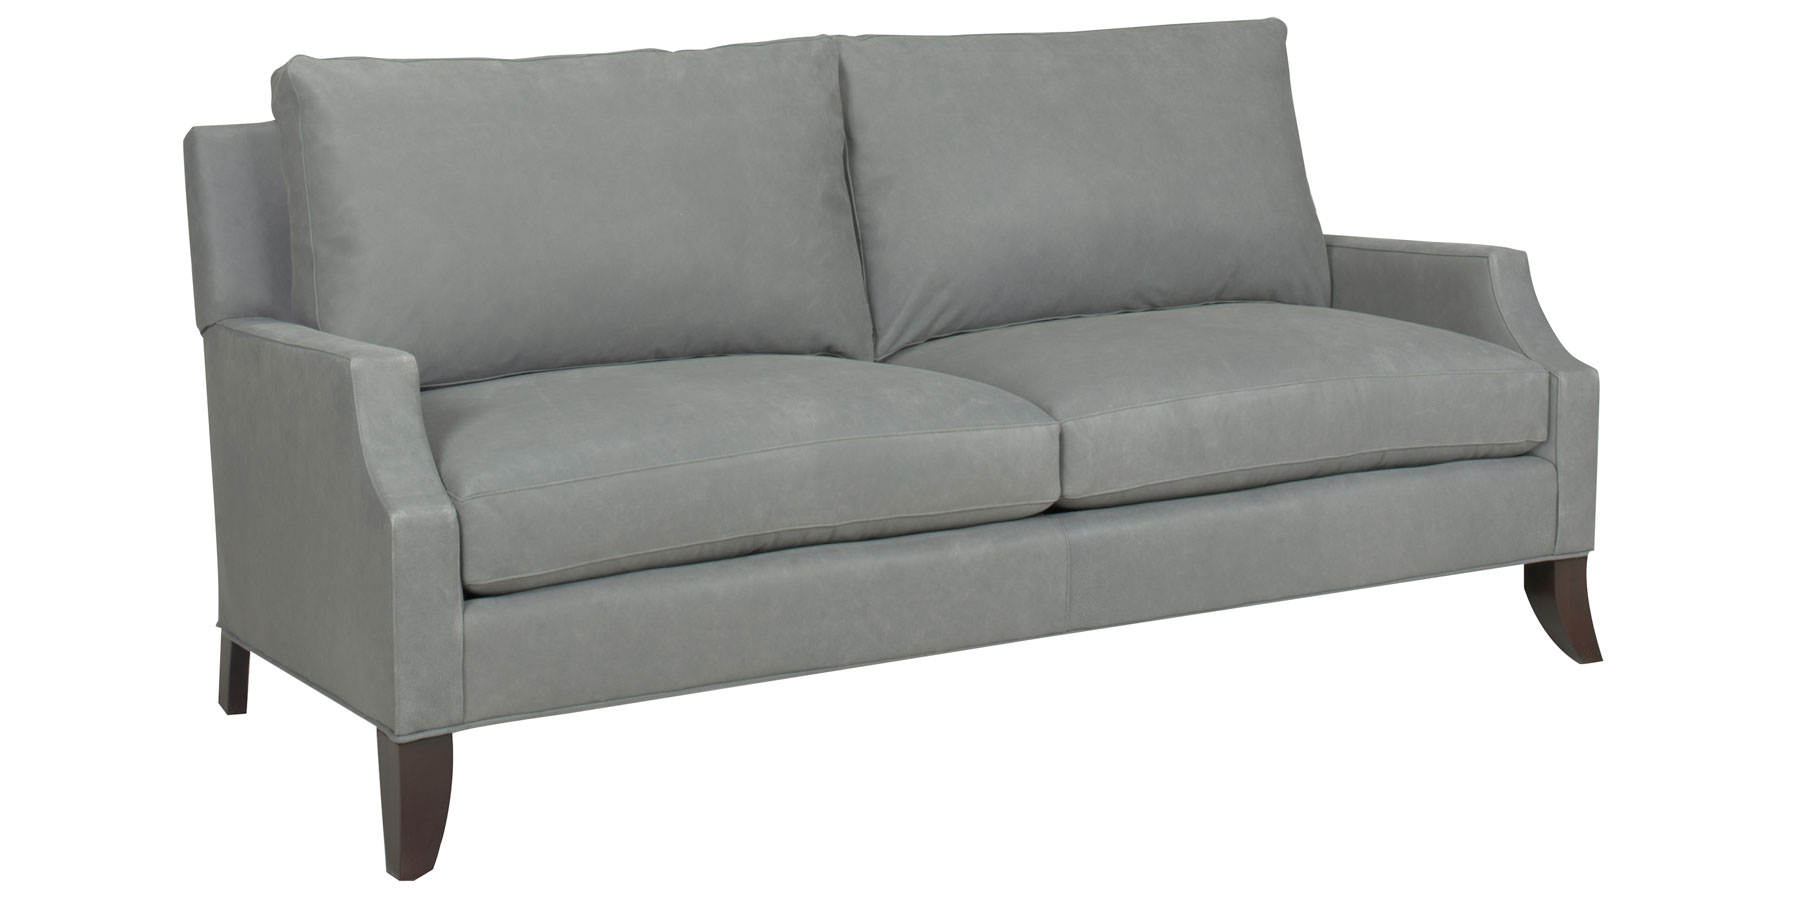 Apartment Sofa Sleeper Size Sectional Tricks Sofas For Small Within Apartment Sofa Sectional (#4 of 12)